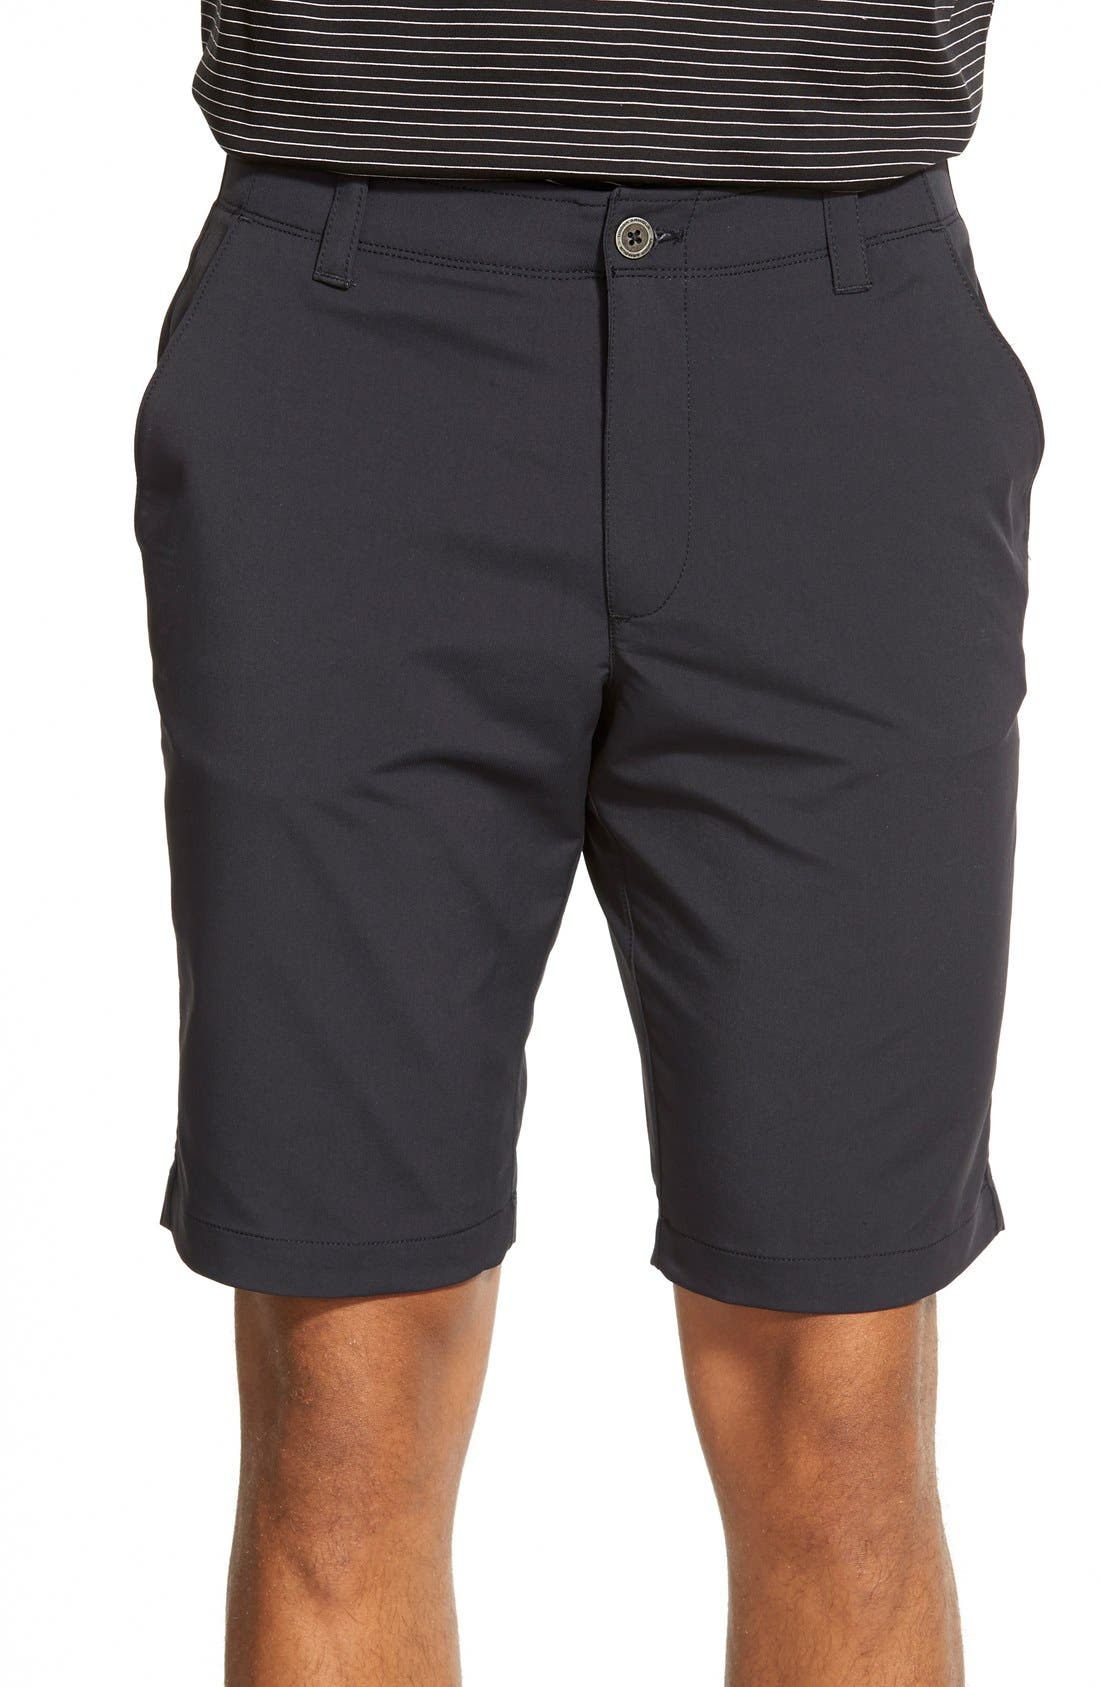 'Matchplay' Moisture Wicking Golf Shorts,                             Main thumbnail 4, color,